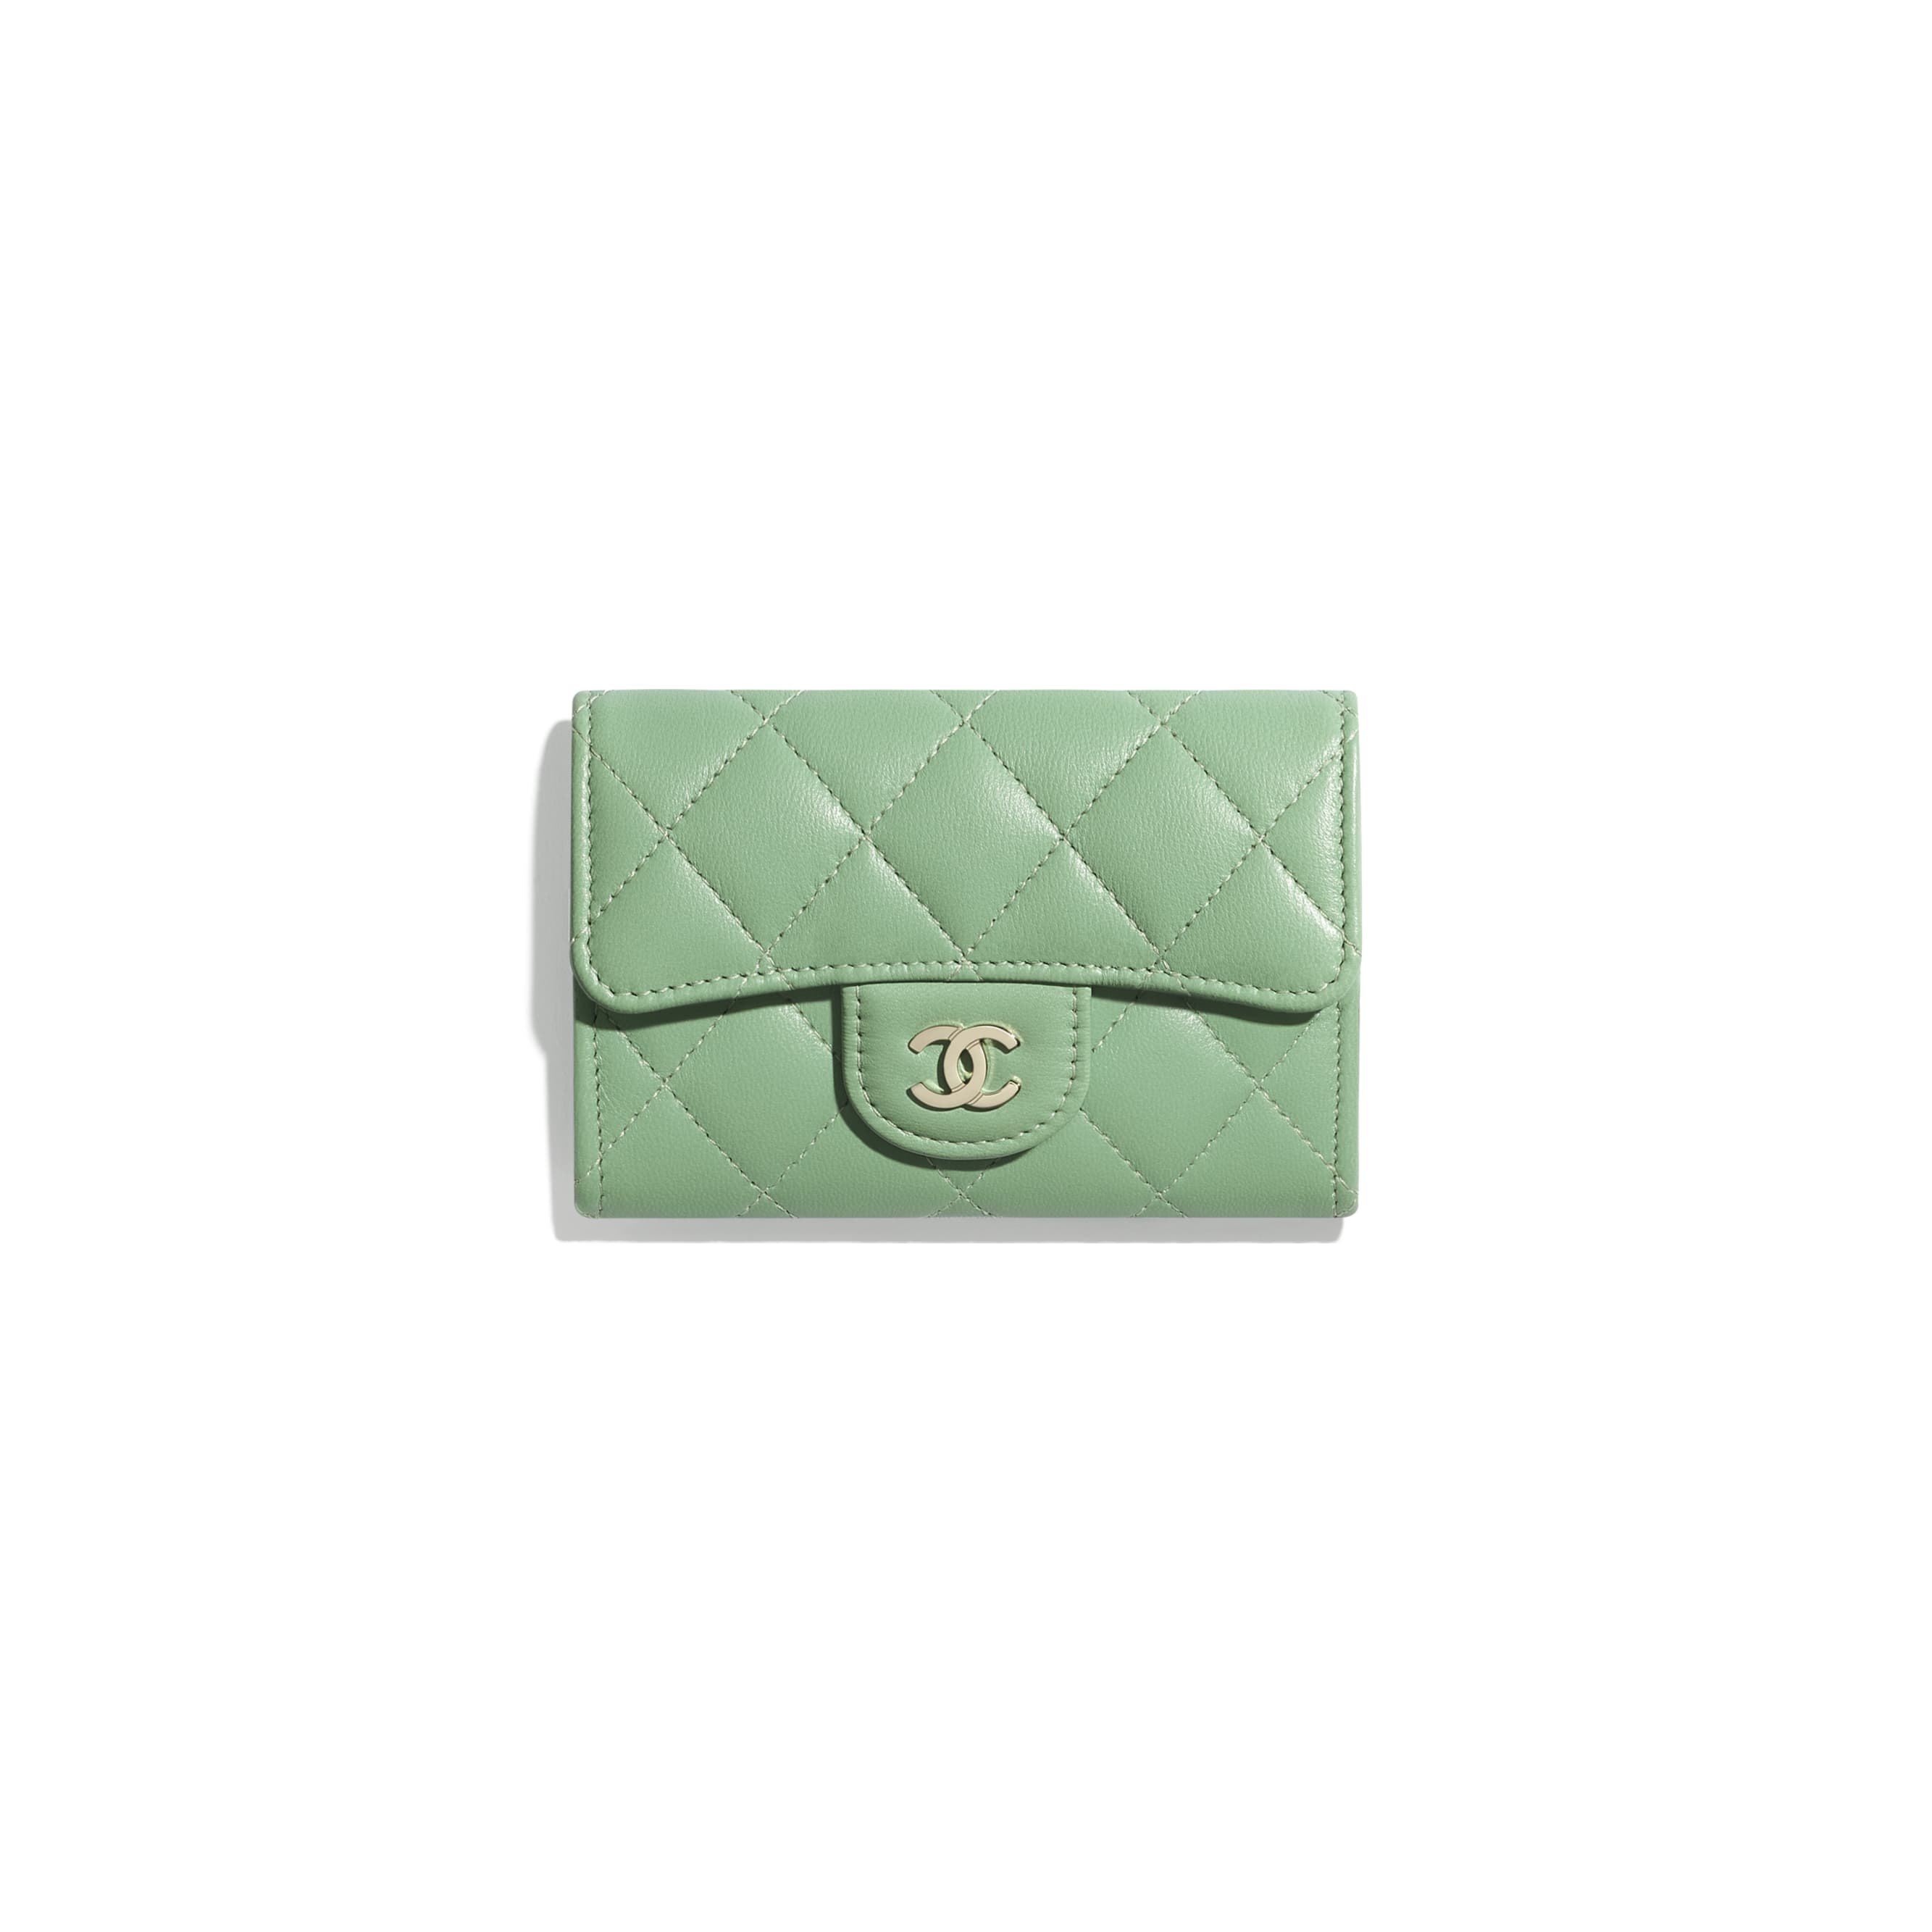 Classic Card Holder - Green - Lambskin - CHANEL - Default view - see standard sized version